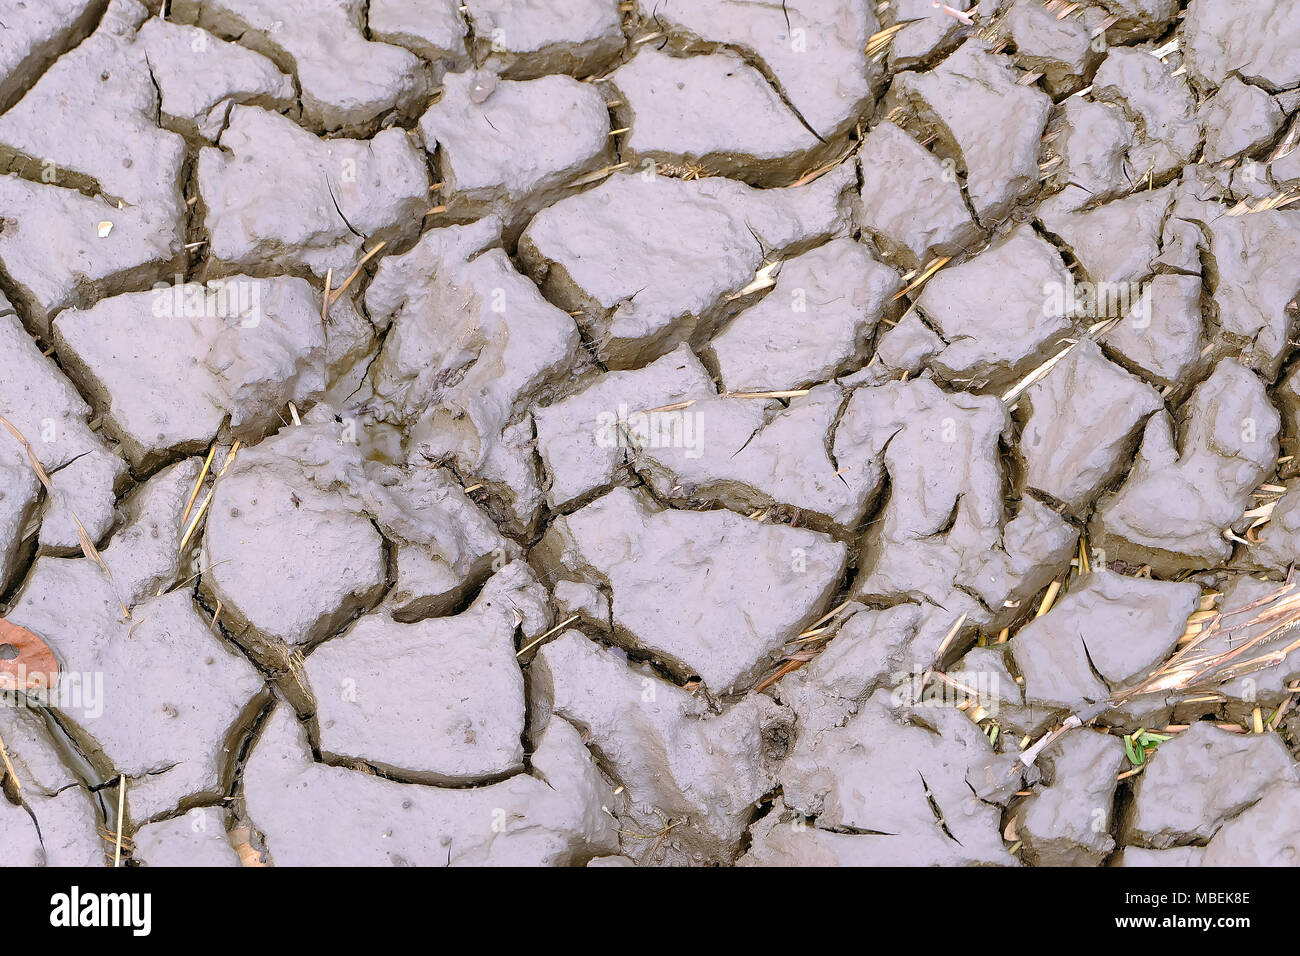 Abstract crack surface of mud, Ground in drought, Soil texture and dry mud, drought environmental issues - Stock Image